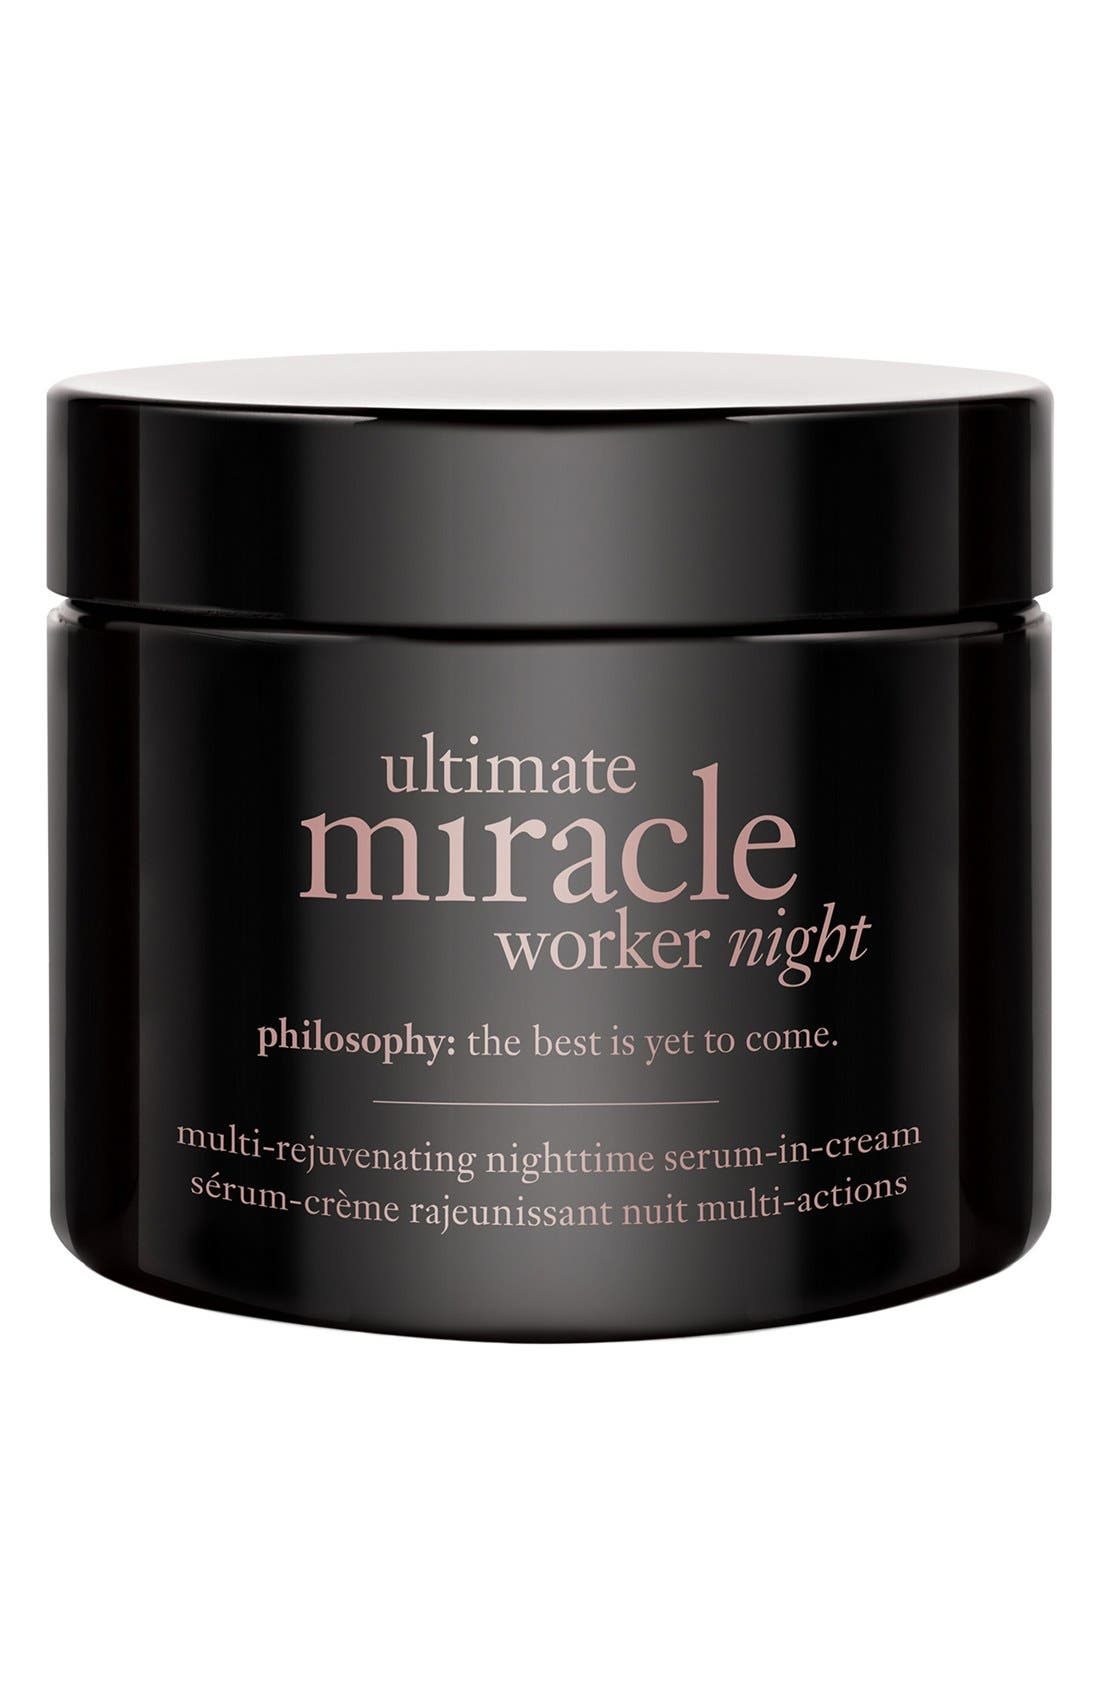 'ultimate miracle worker night' multi-rejuvenating nighttime serum-in-cream,                             Main thumbnail 1, color,                             NO COLOR